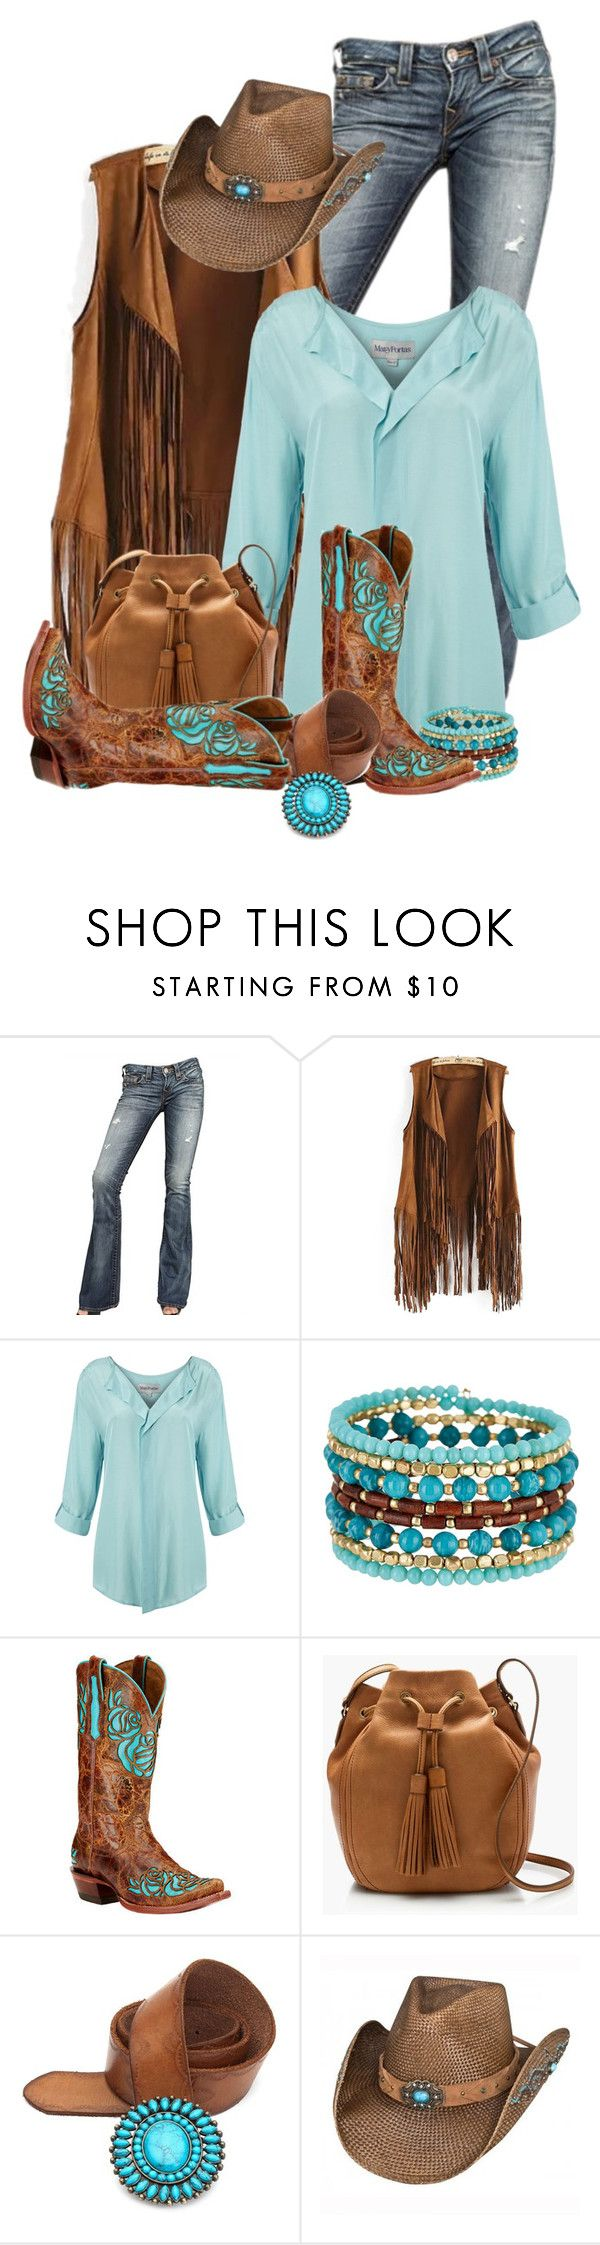 """Western Wear"" by flowerchild805 on Polyvore featuring True Religion, Mary Portas, Madison Parker, Ariat, J.Crew, Lucky Brand, women's clothing, women, female and woman"